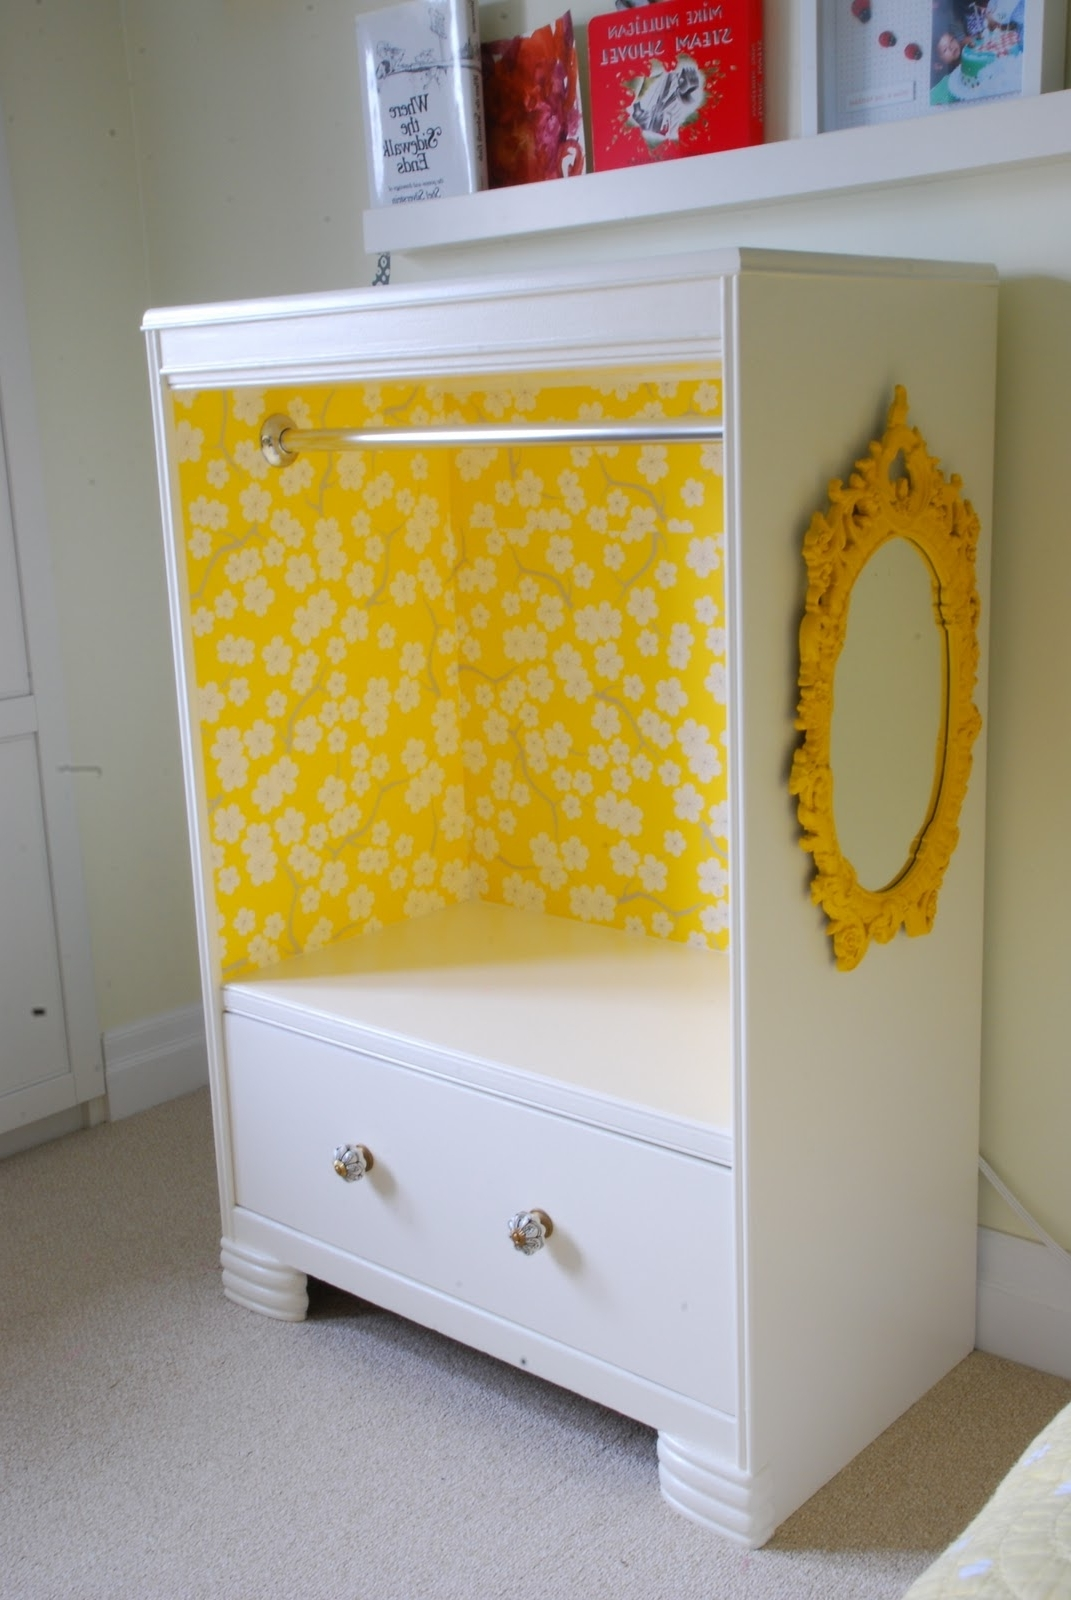 Wardrobes For Baby Clothes Within 2018 Kids' Storage And Organization Ideas – Part (View 9 of 15)